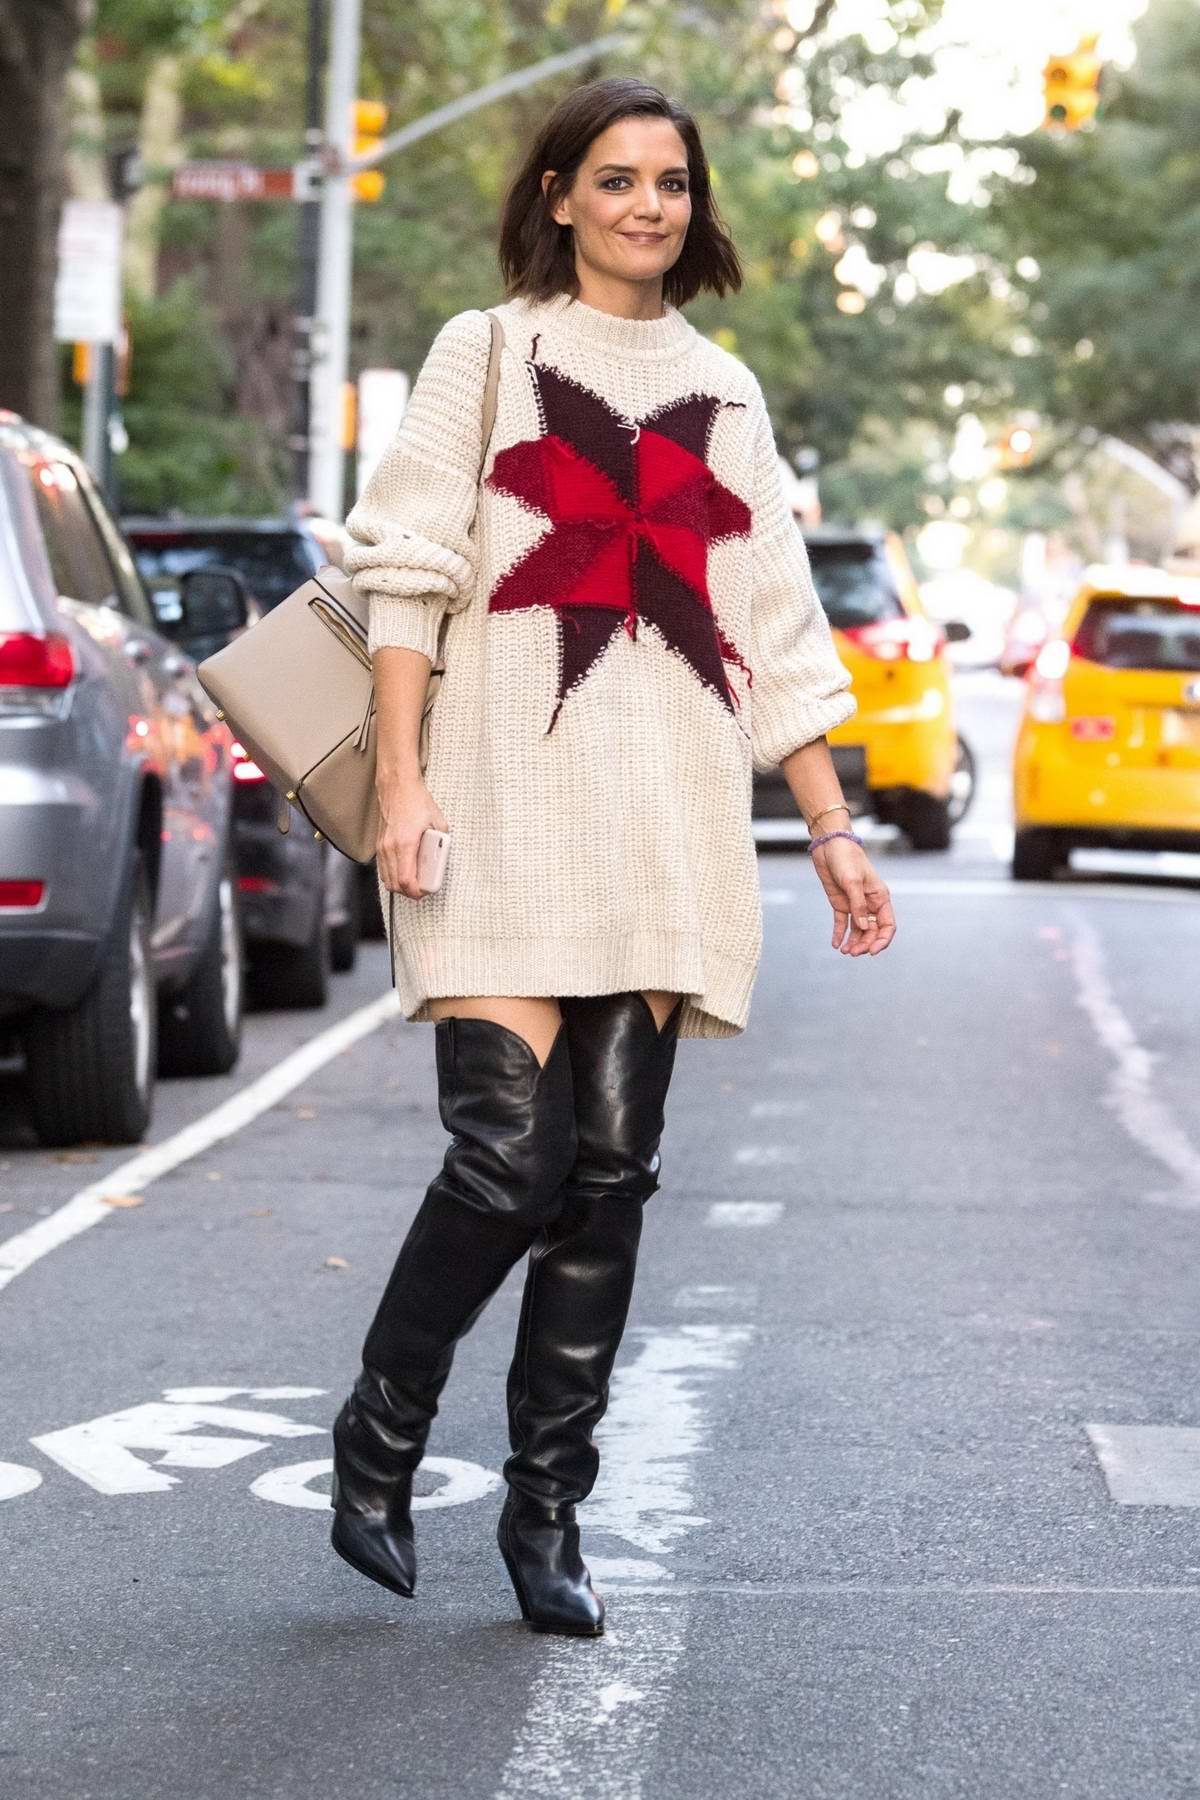 Katie Holmes wears an oversized knitted sweater with thigh high black boots while out in Gramercy Park, New York City